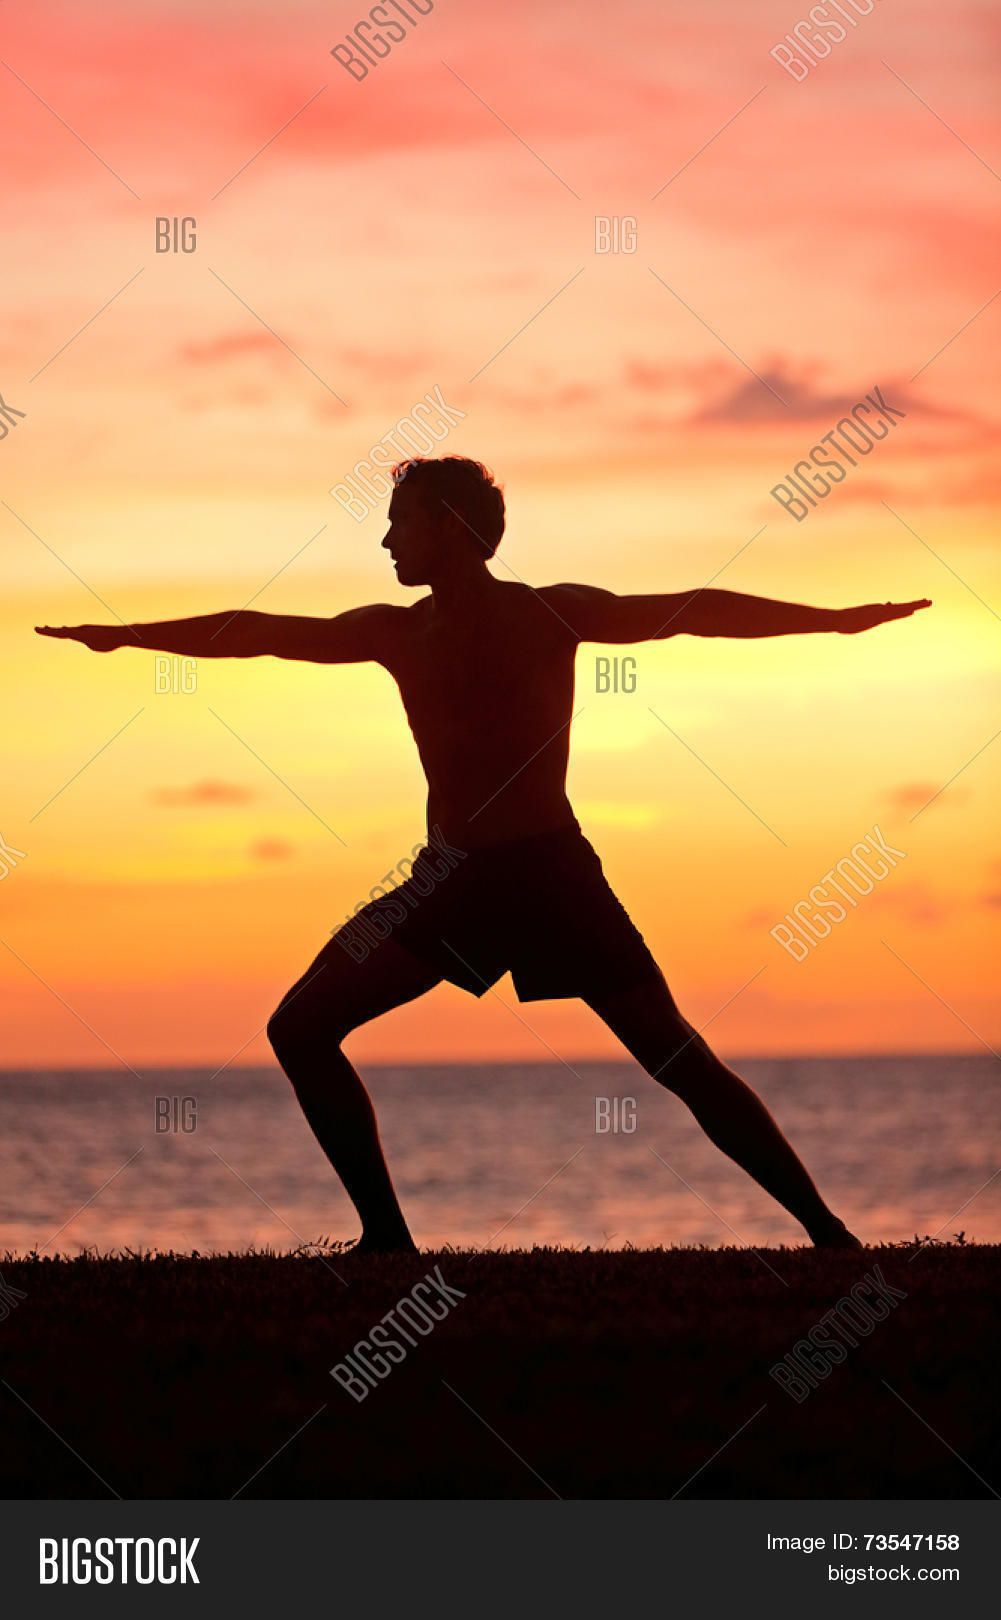 Yoga Man Training And Meditating In Warrior Pose Outside By Beach At Sunrise Or Sunset